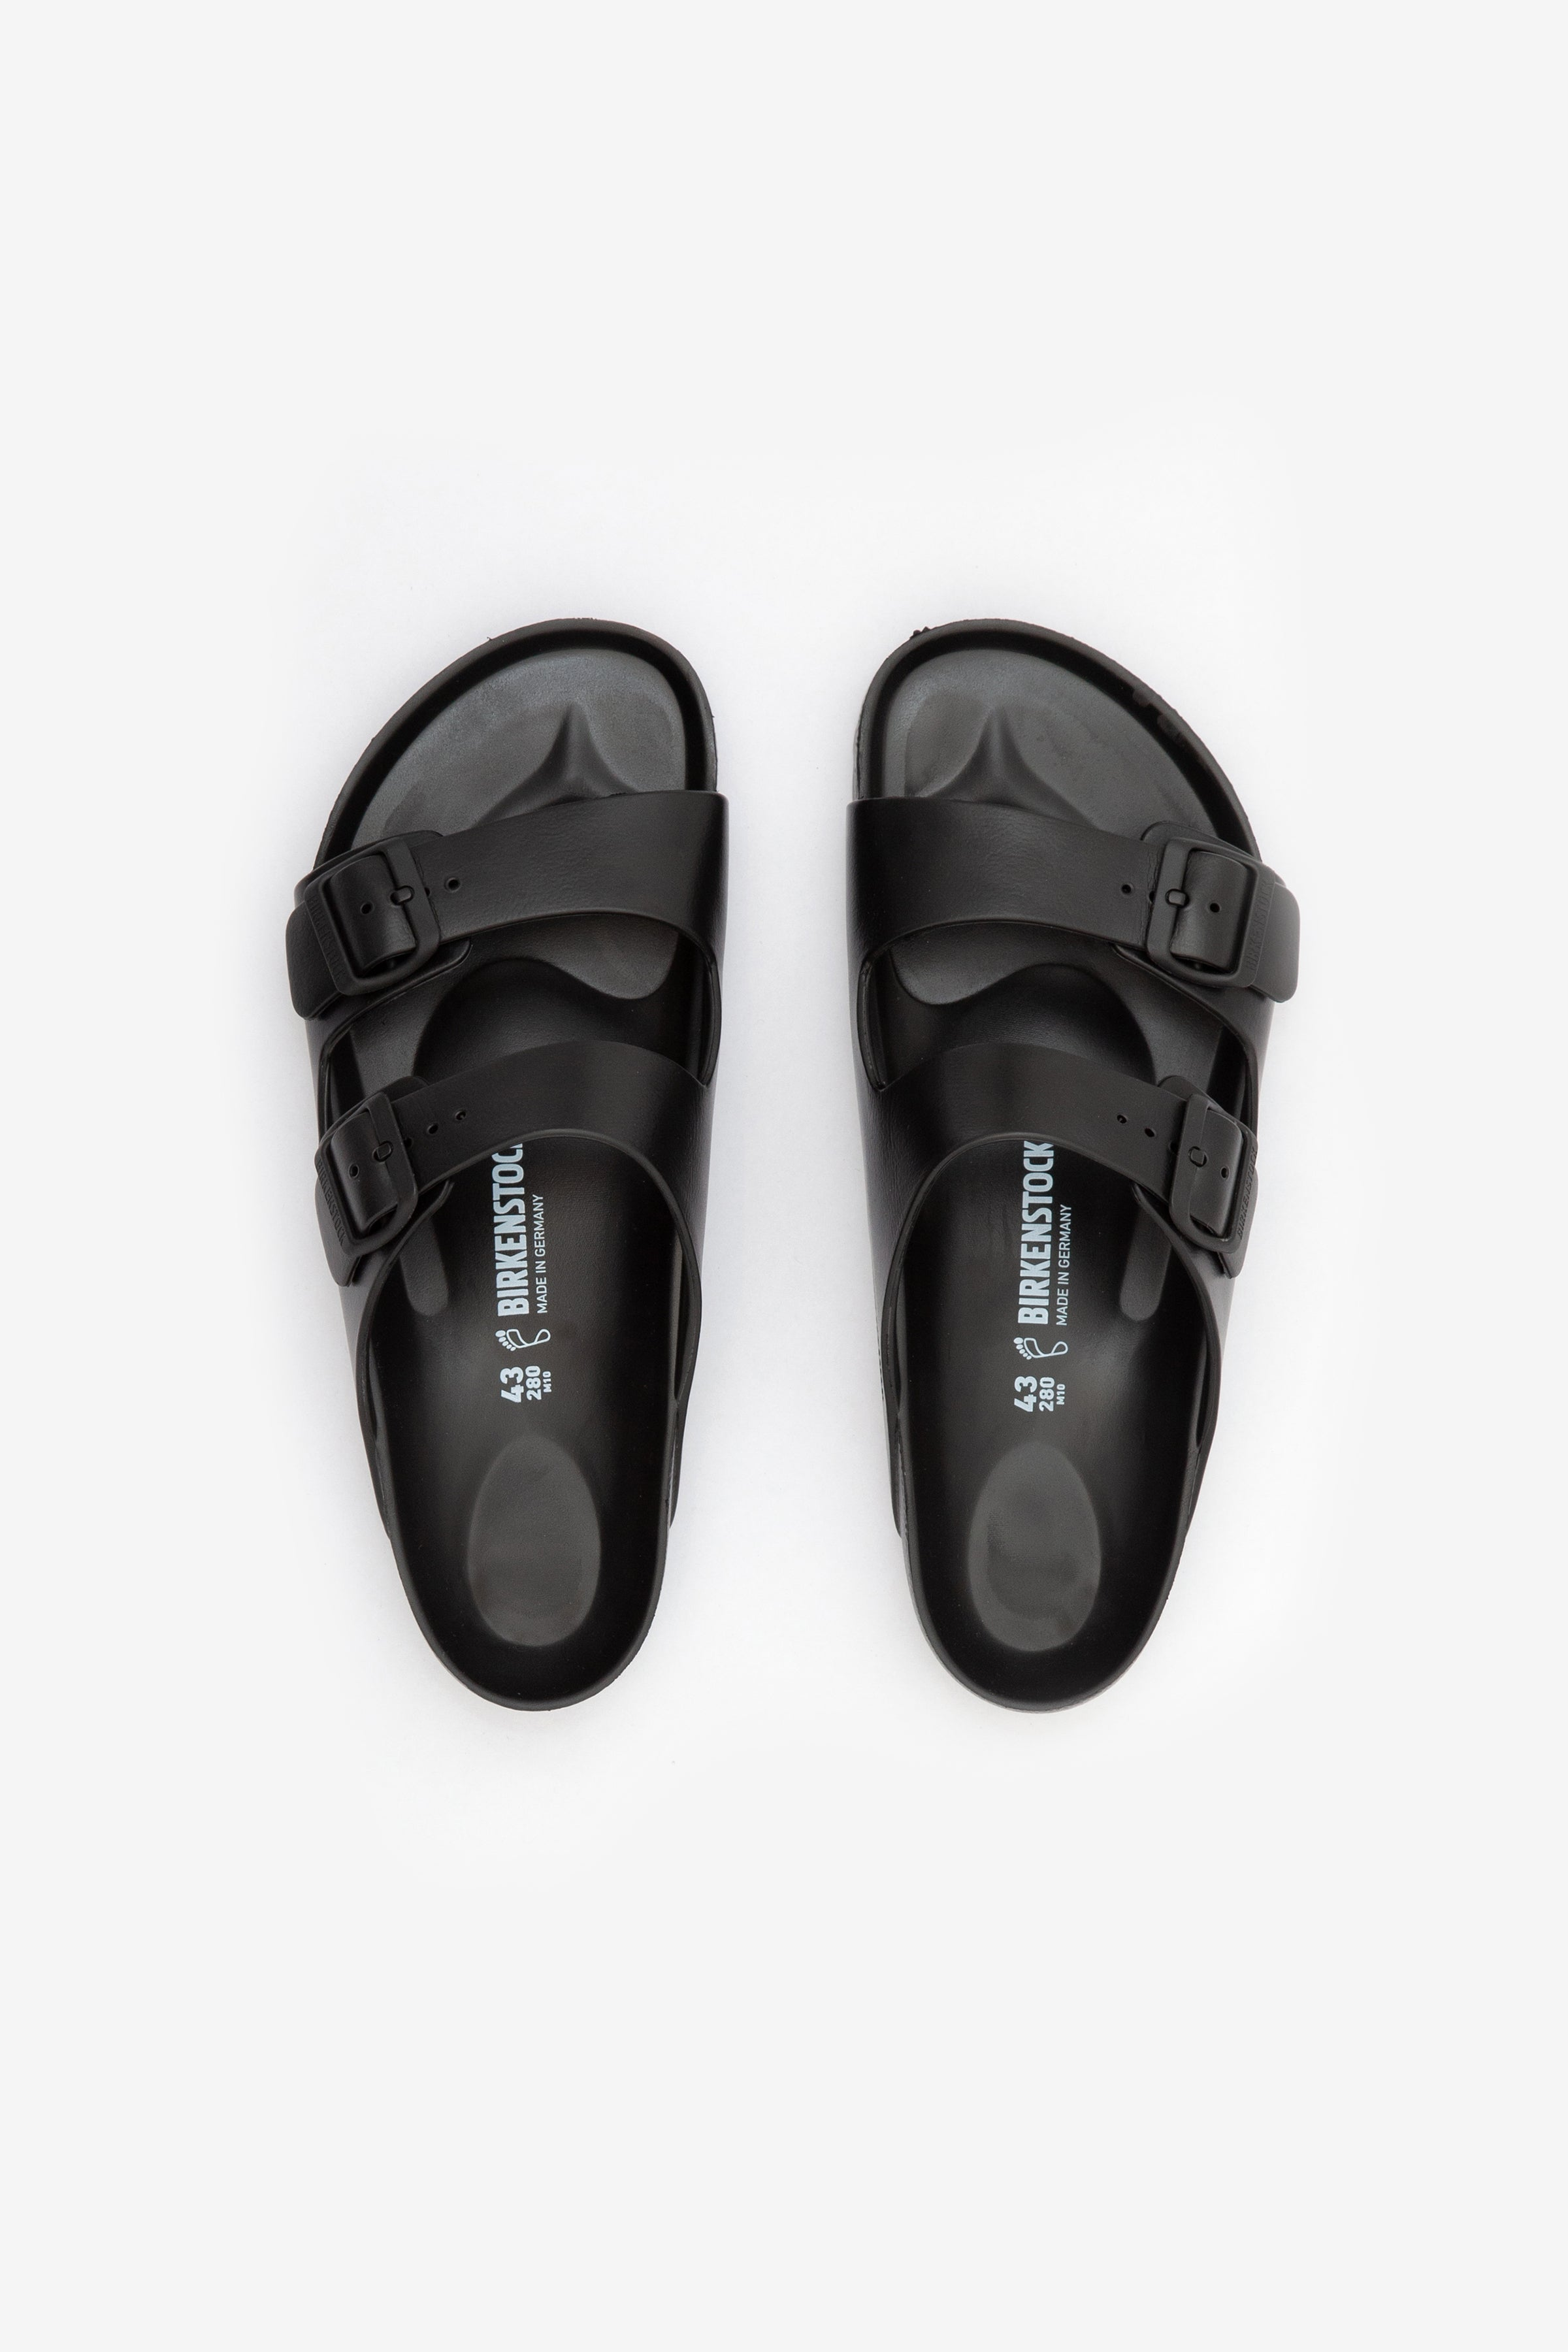 Birkenstock EVA Arizona Black